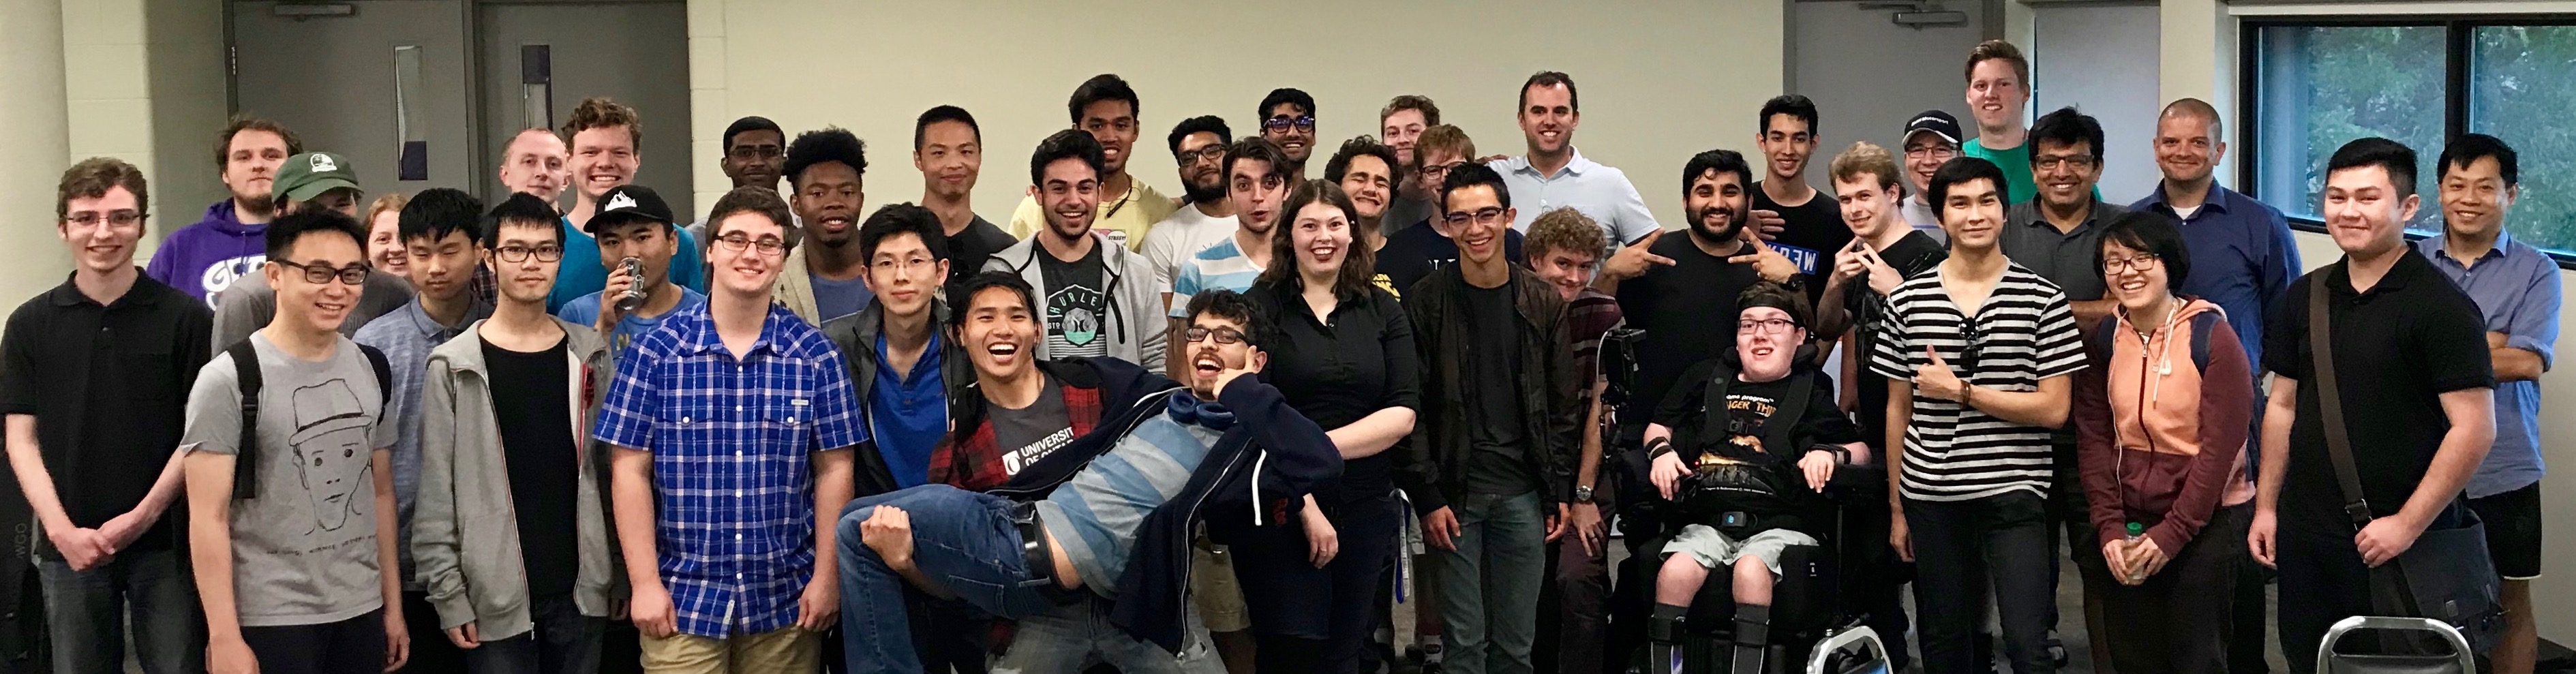 Computer Science students at the 2018 Fall Student Mixer